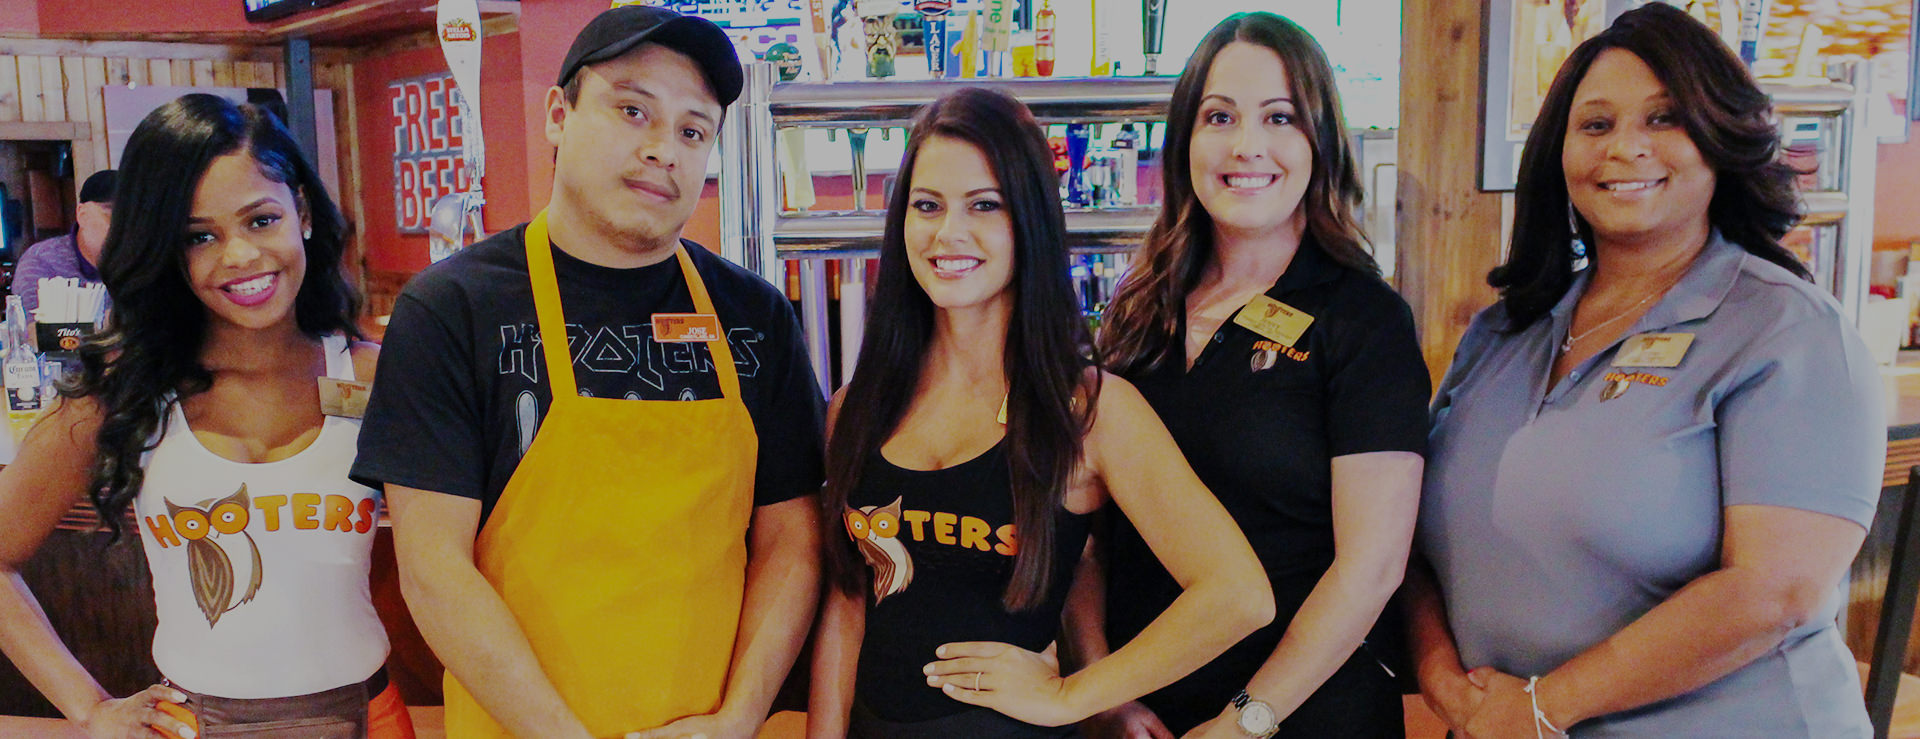 Restaurant Manager Hooters South Africa